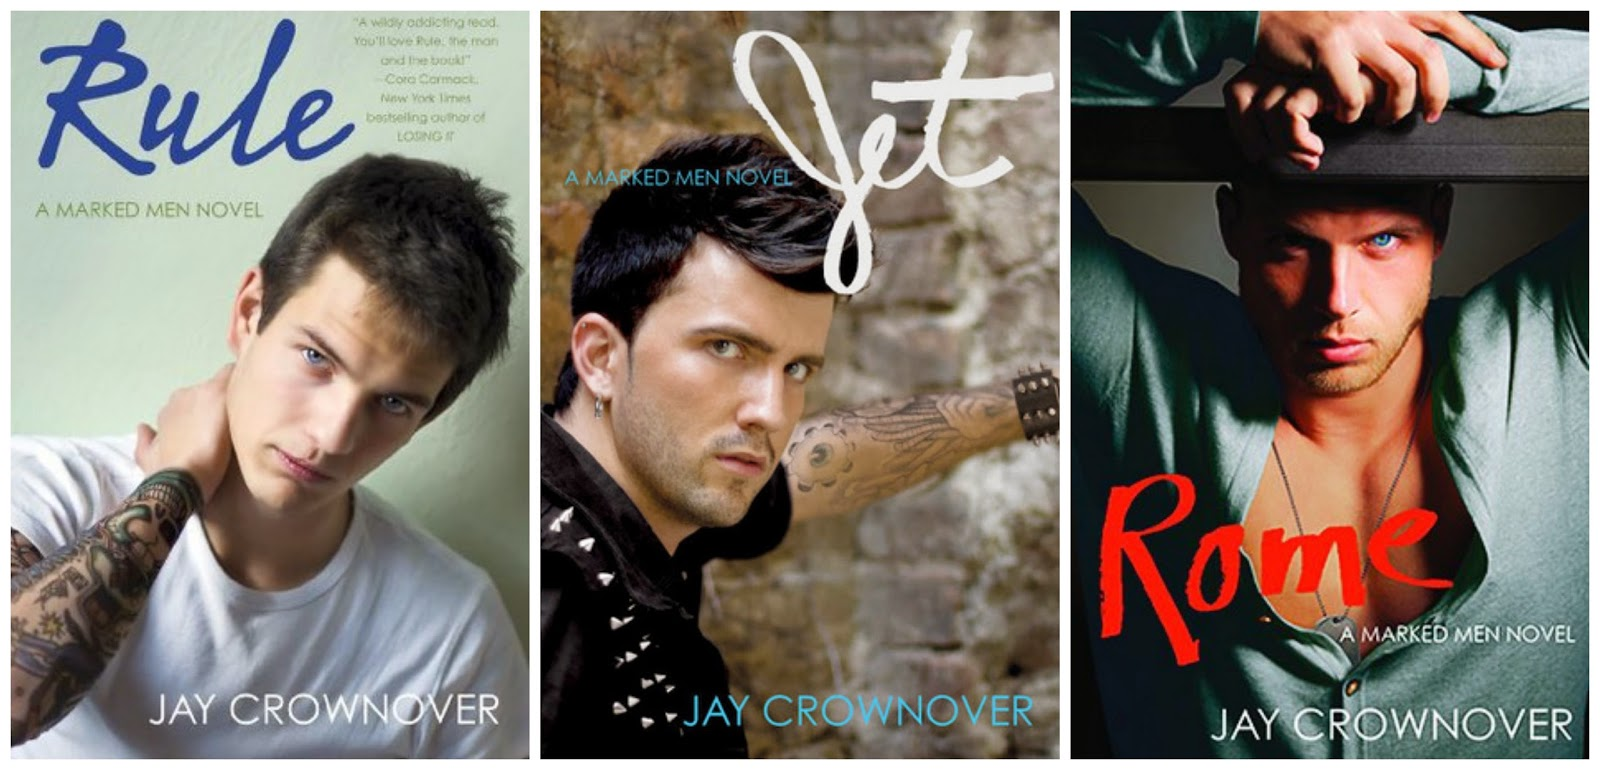 Marked Men series - Jay Crownover